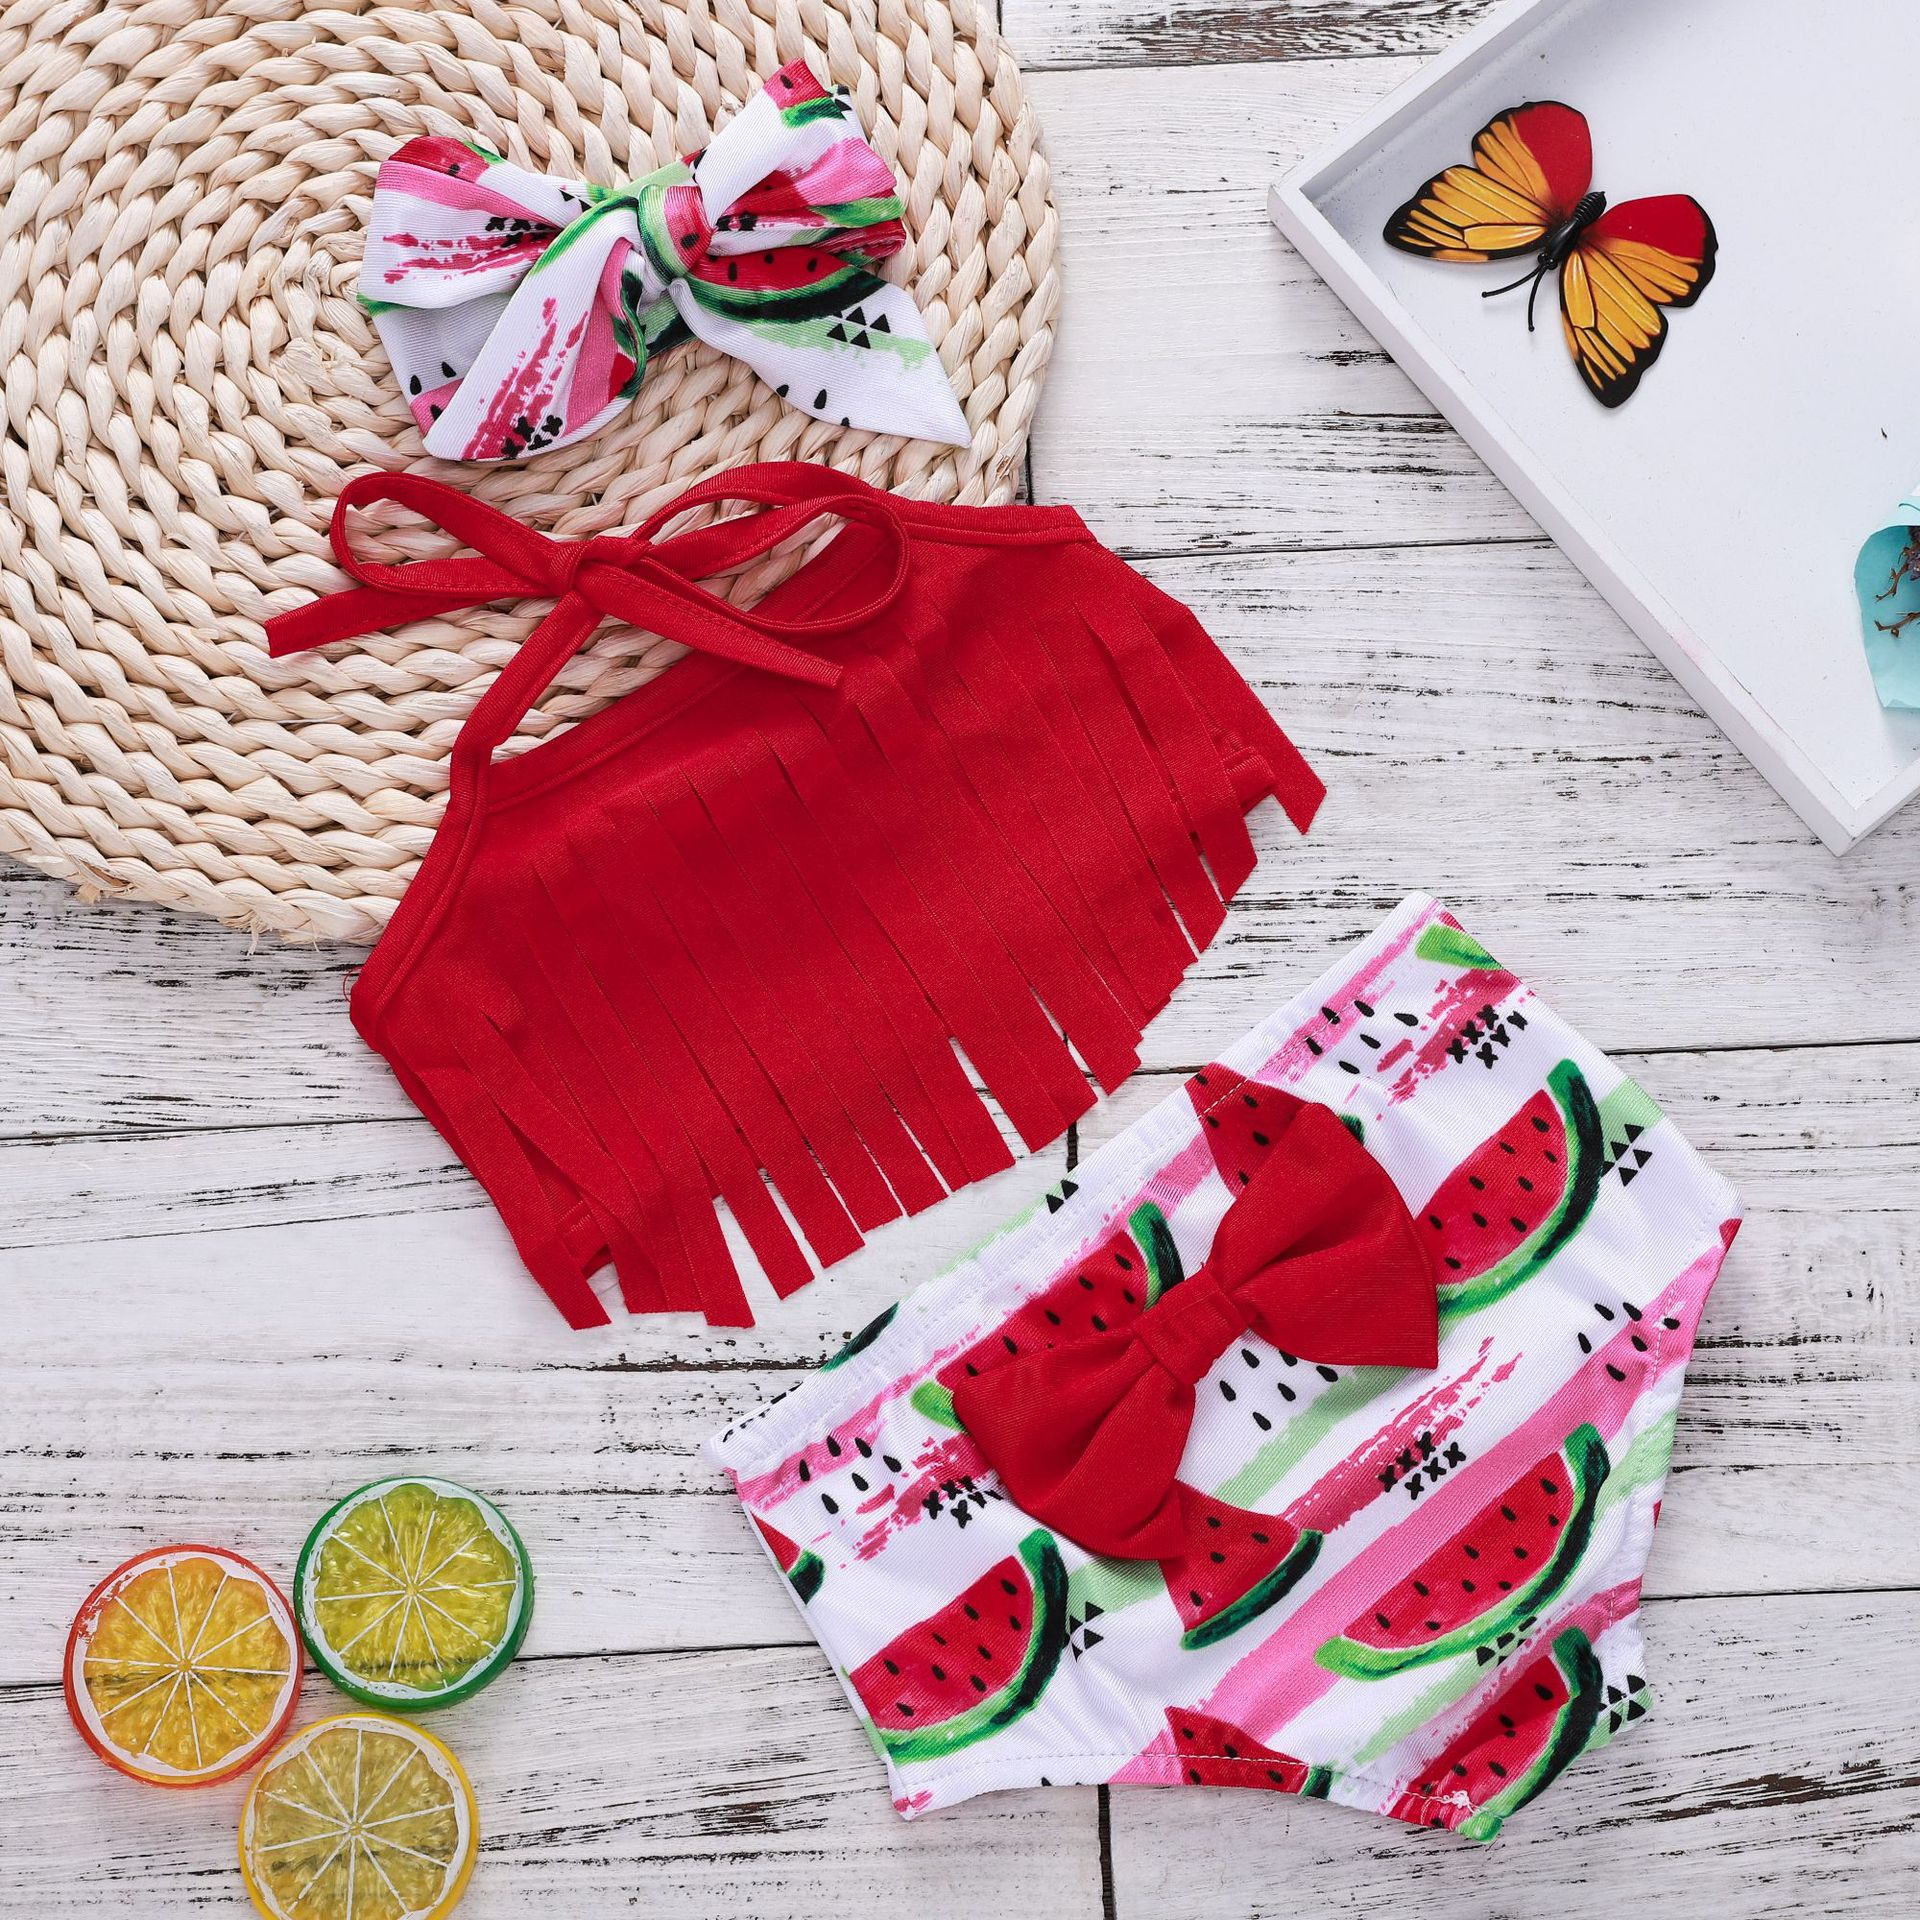 Baby Toddle Girls Tassels Bikini Prints Watermelons Shorts Swimwear Sets 0-2 Years